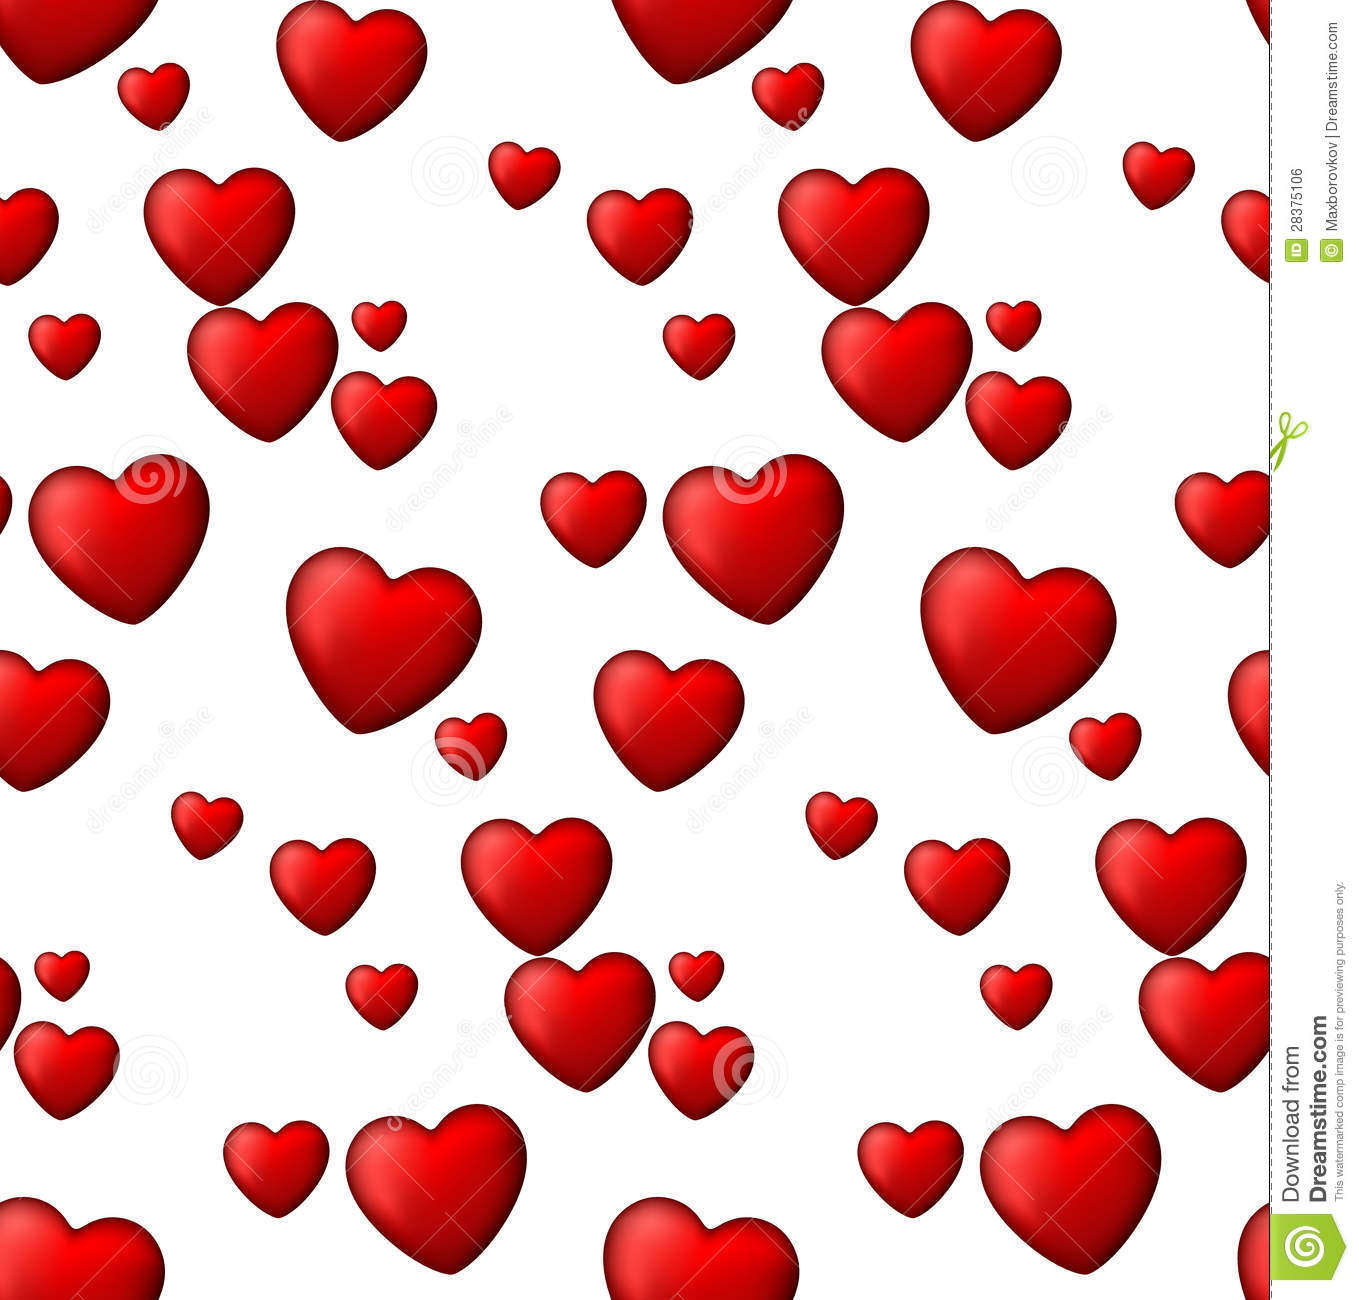 Red Love Seamless Background Of Heart Bubbles. Stock Vector ...